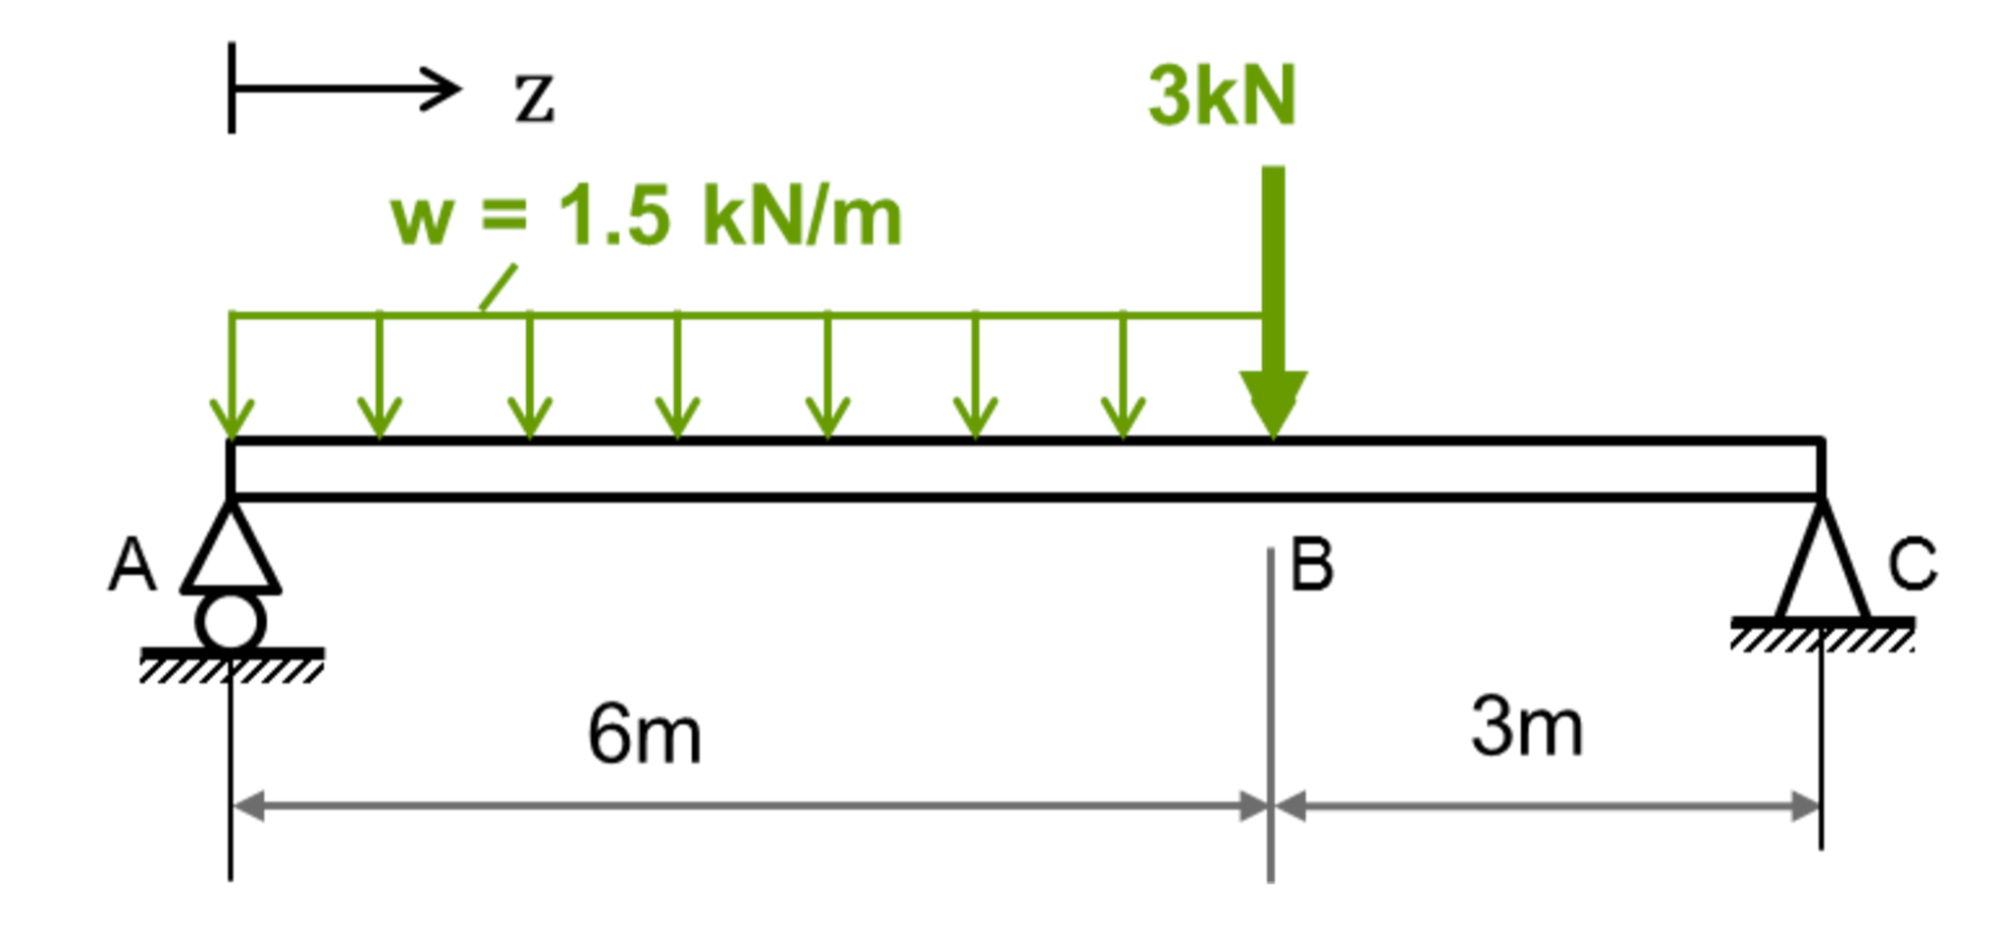 hight resolution of  shear force v and bending moment bm diagrams for the beam determine the position and magnitude of the maximum shear force and bending moment